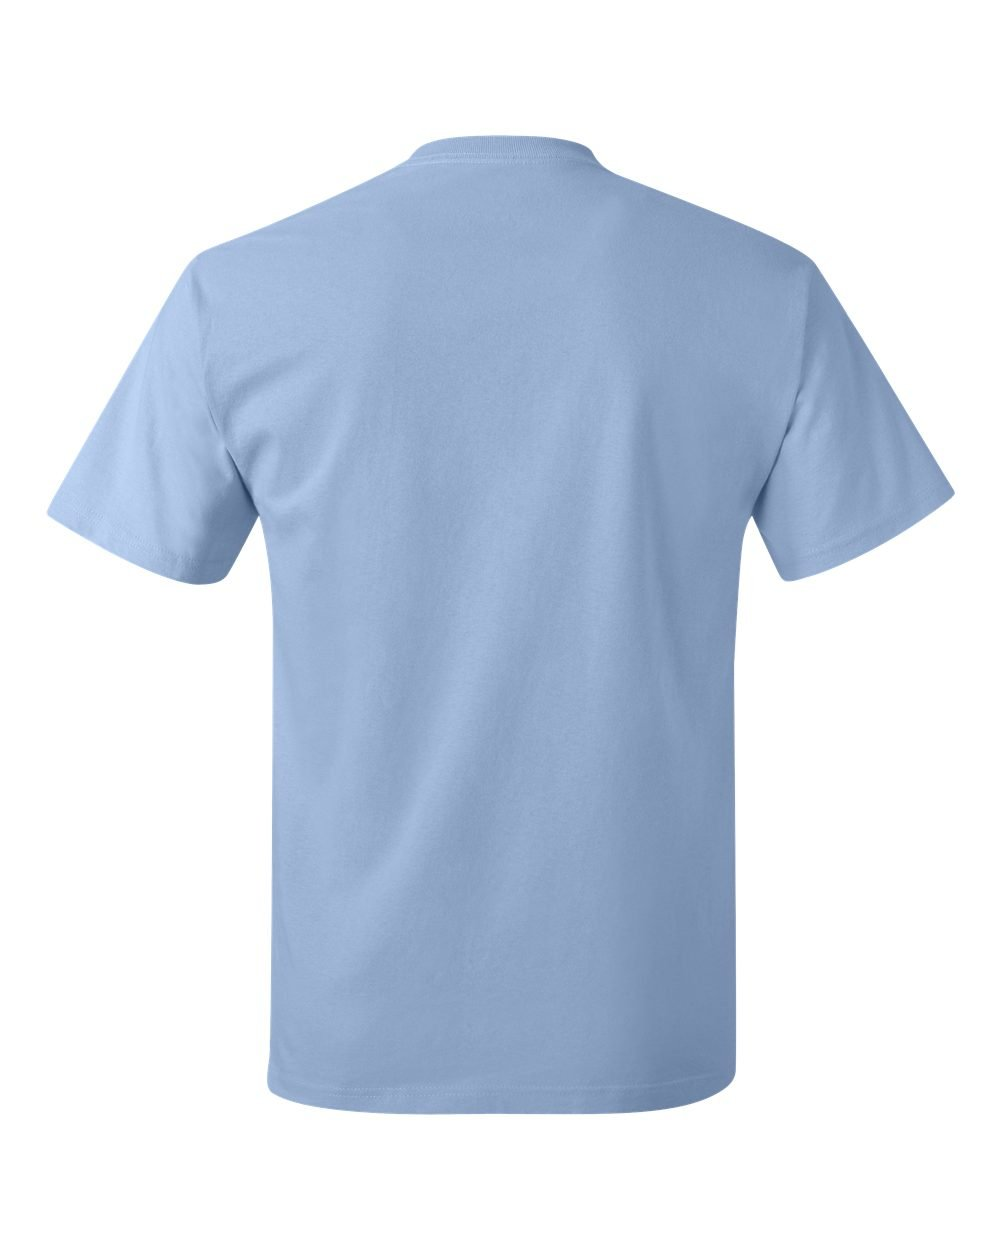 Hanes Tagless T-Shirt  S,LIGHT BLUE